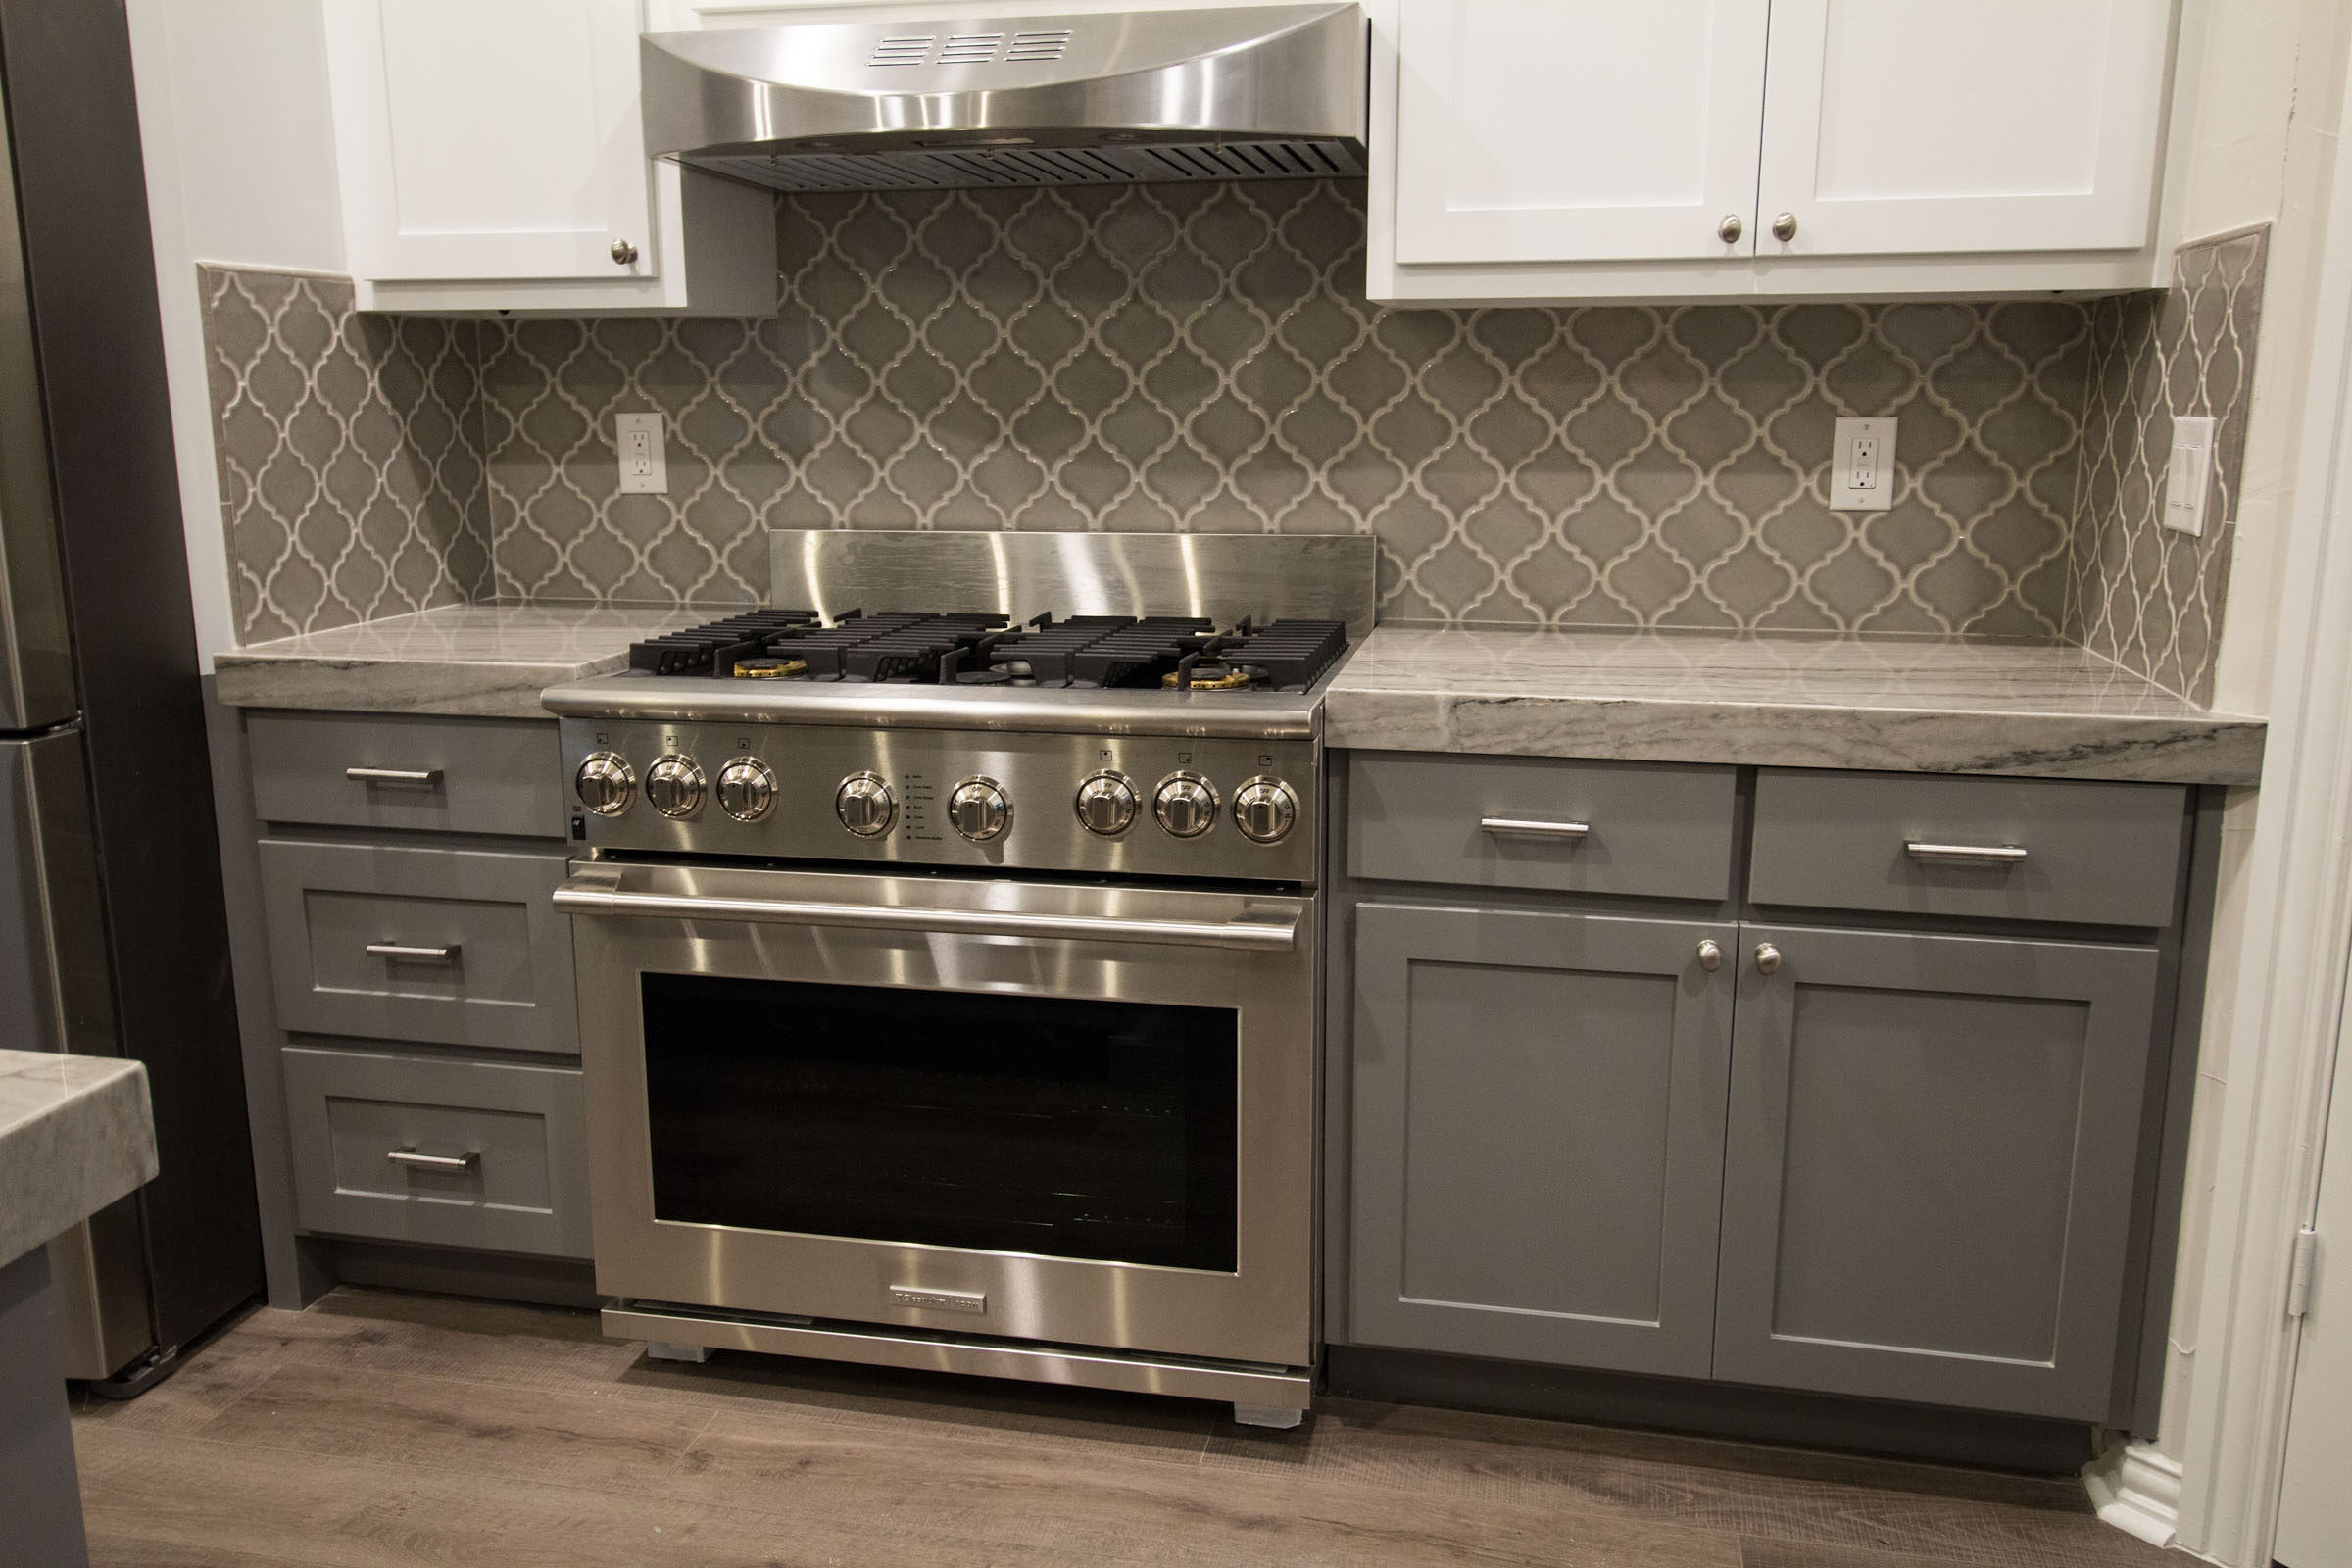 Contemporary kitchen remodel with industrial stainless steel gas cooking range, arabesque tile, grey shaker cabinets, white uppers, grey granite